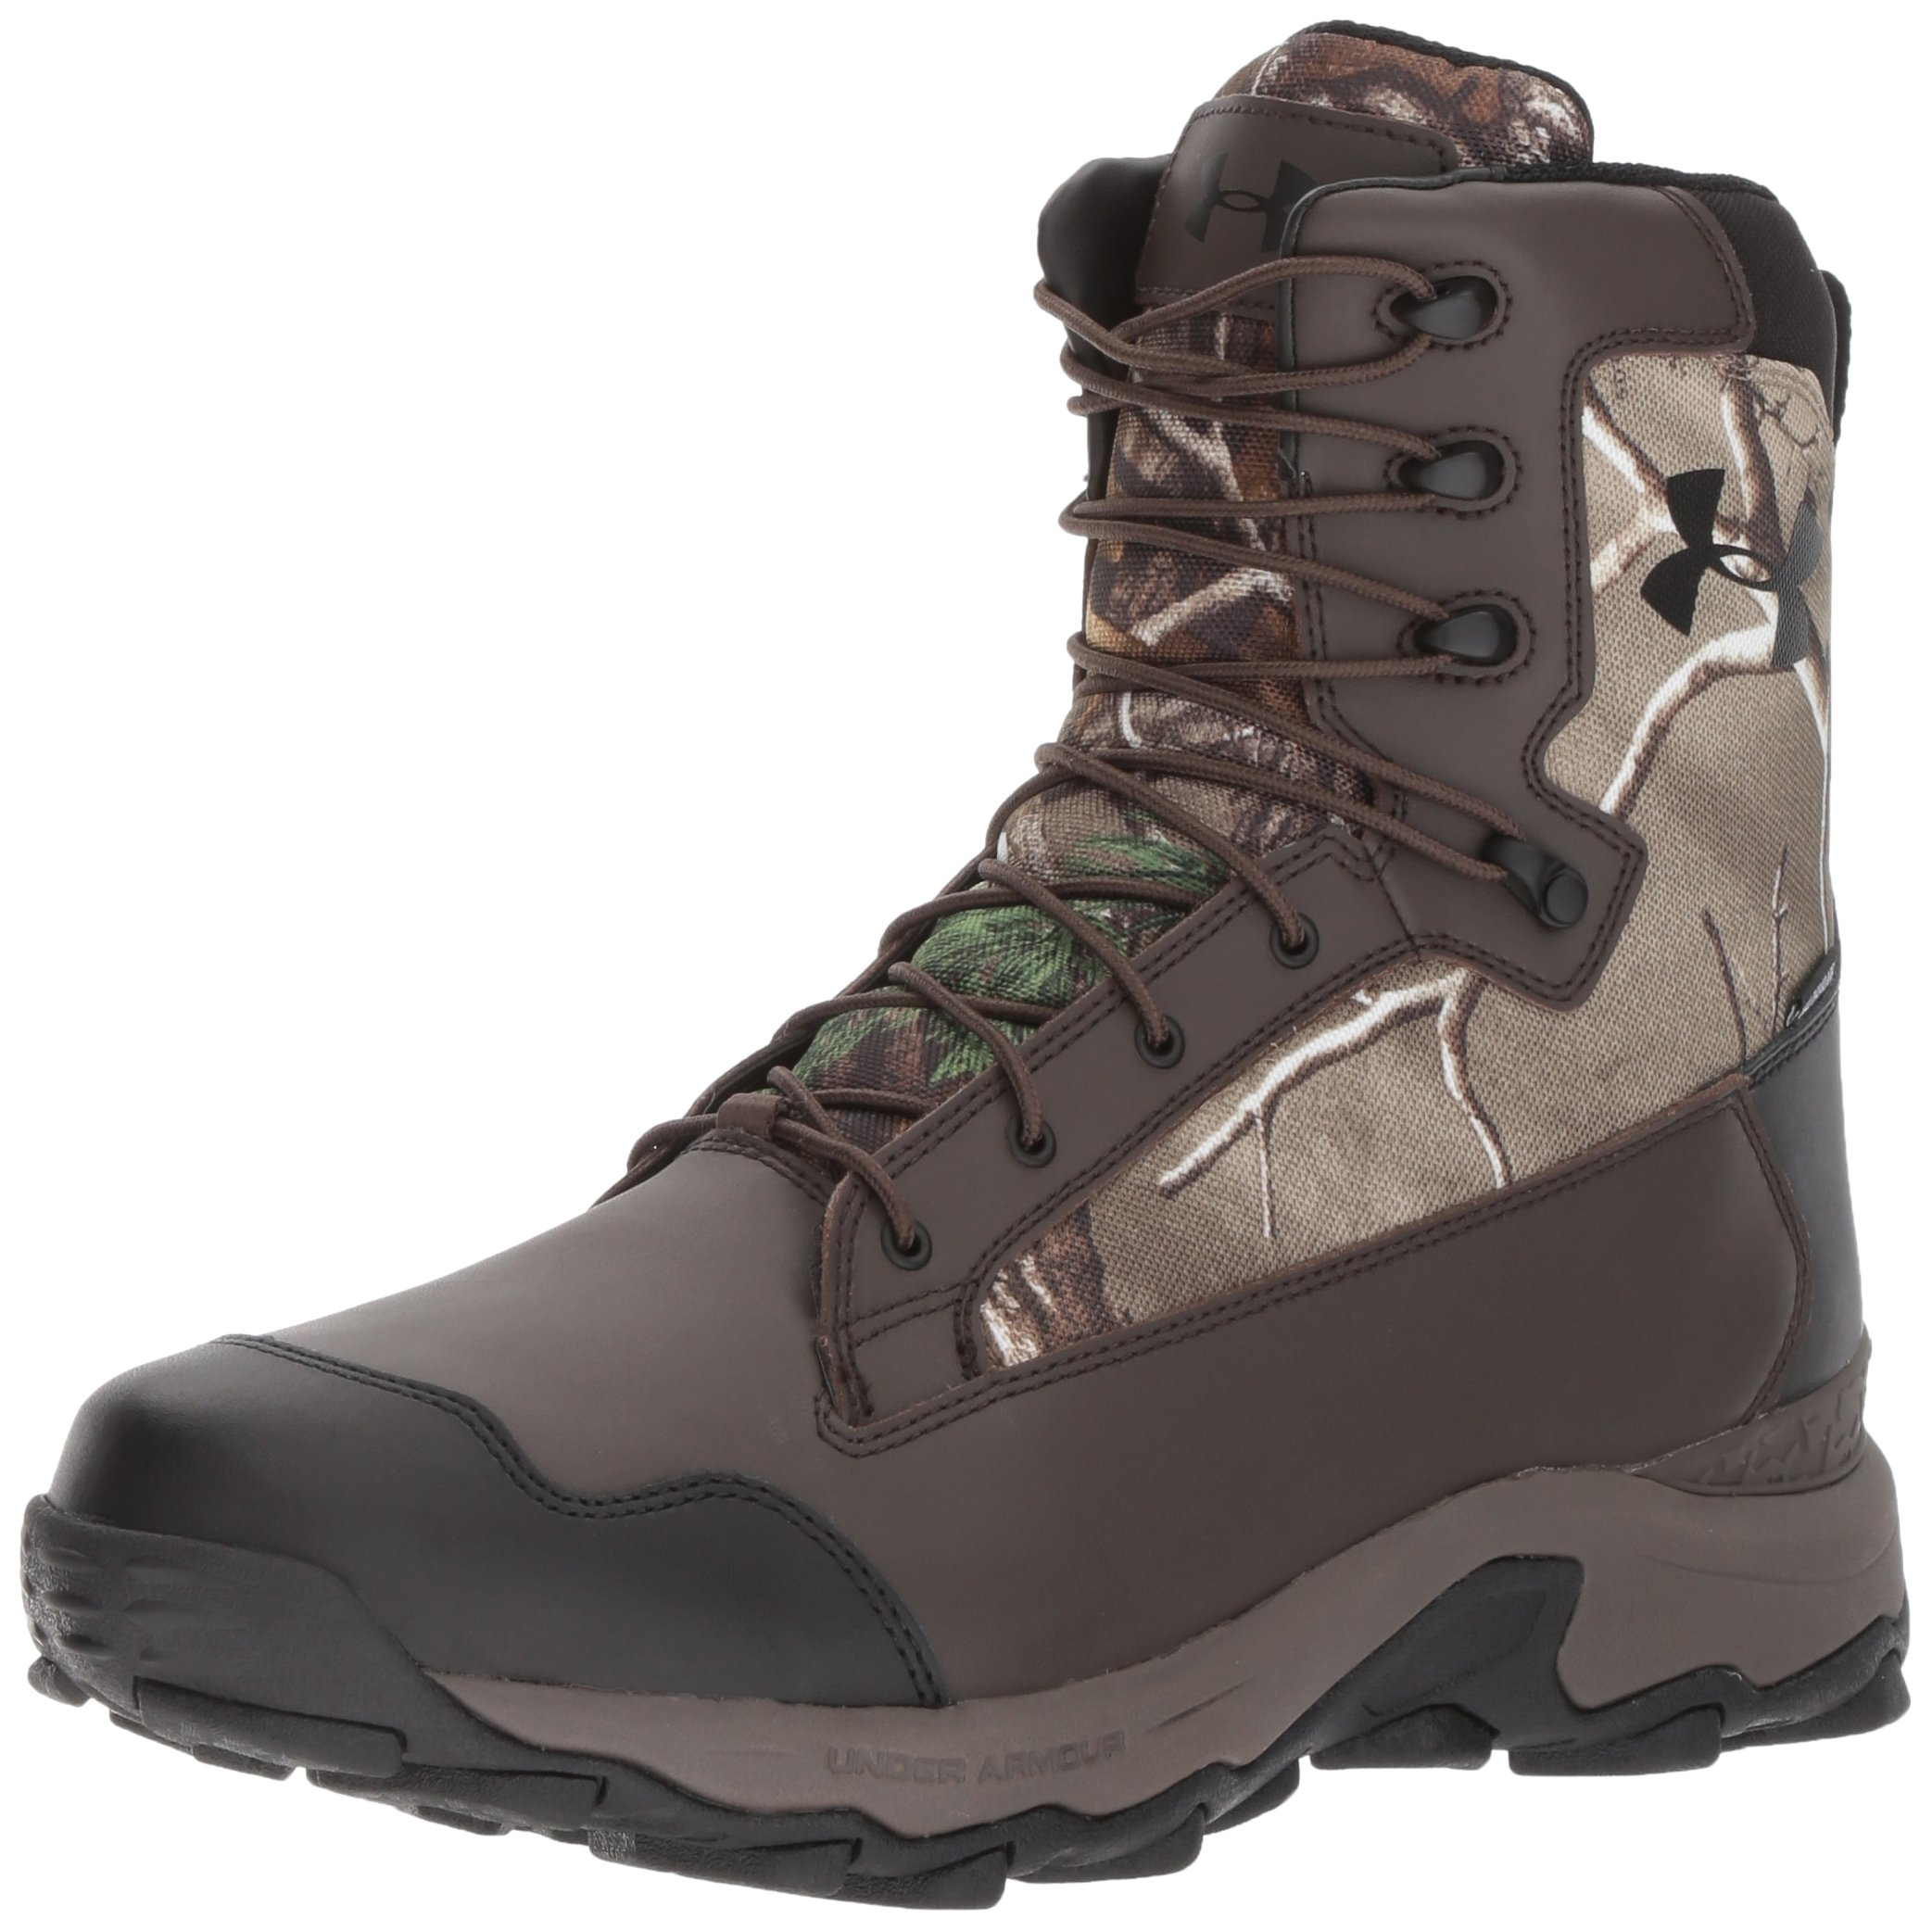 Under Armour Men's Tanger Waterproof-400G Ankle Boot, Realtree Ap-Xtra (946)/Maverick Brown, 10